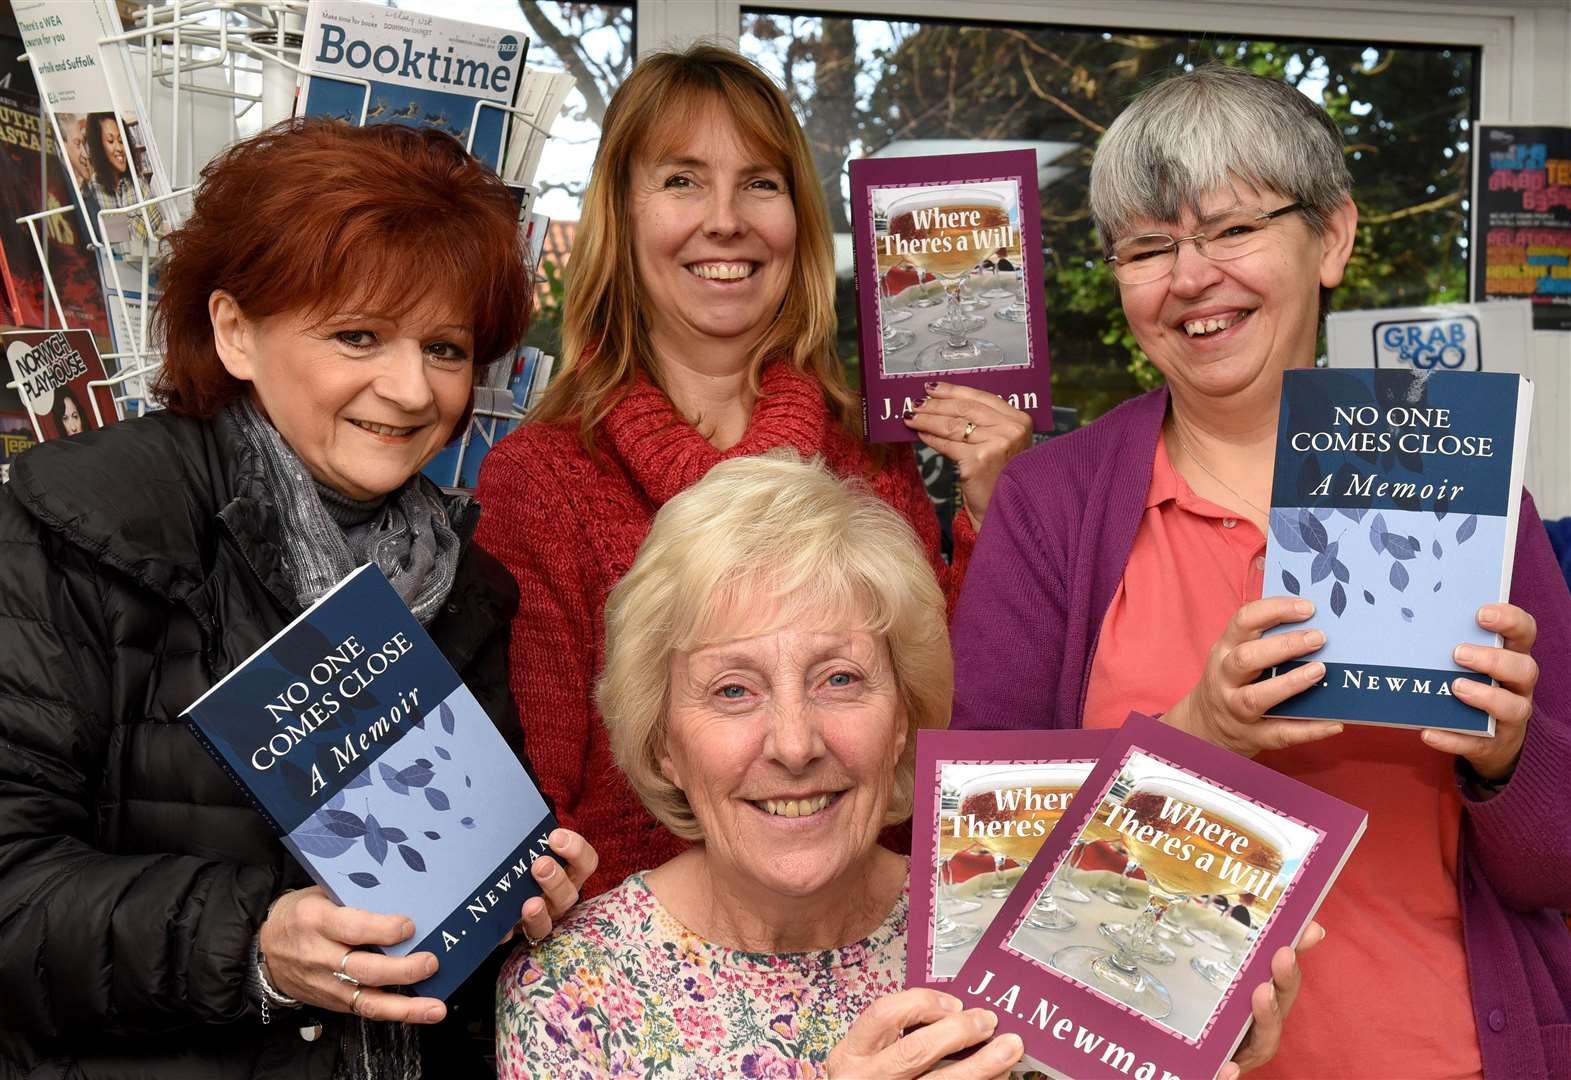 West Norfolk author shares literary advice at event at Downham Market Library